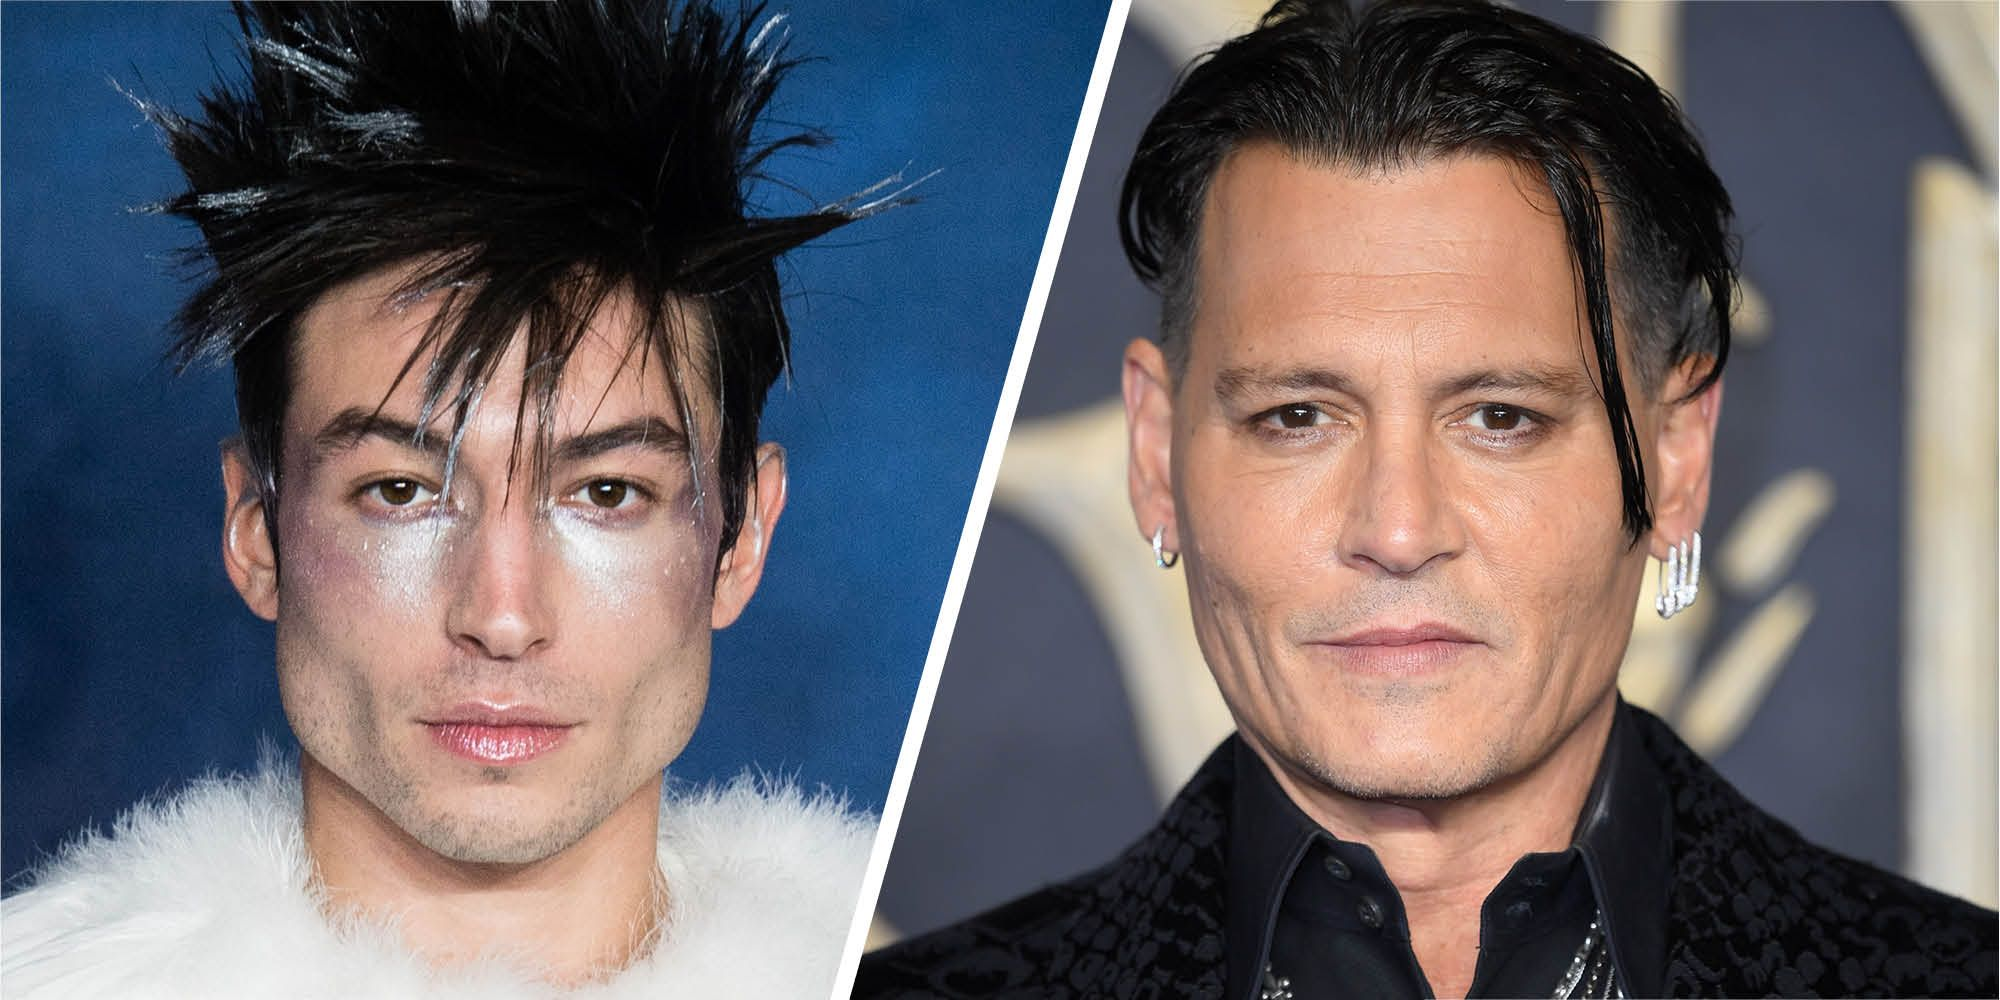 Ezra Miller speaks out over Johnny Depp Fantastic Beasts casting controversy